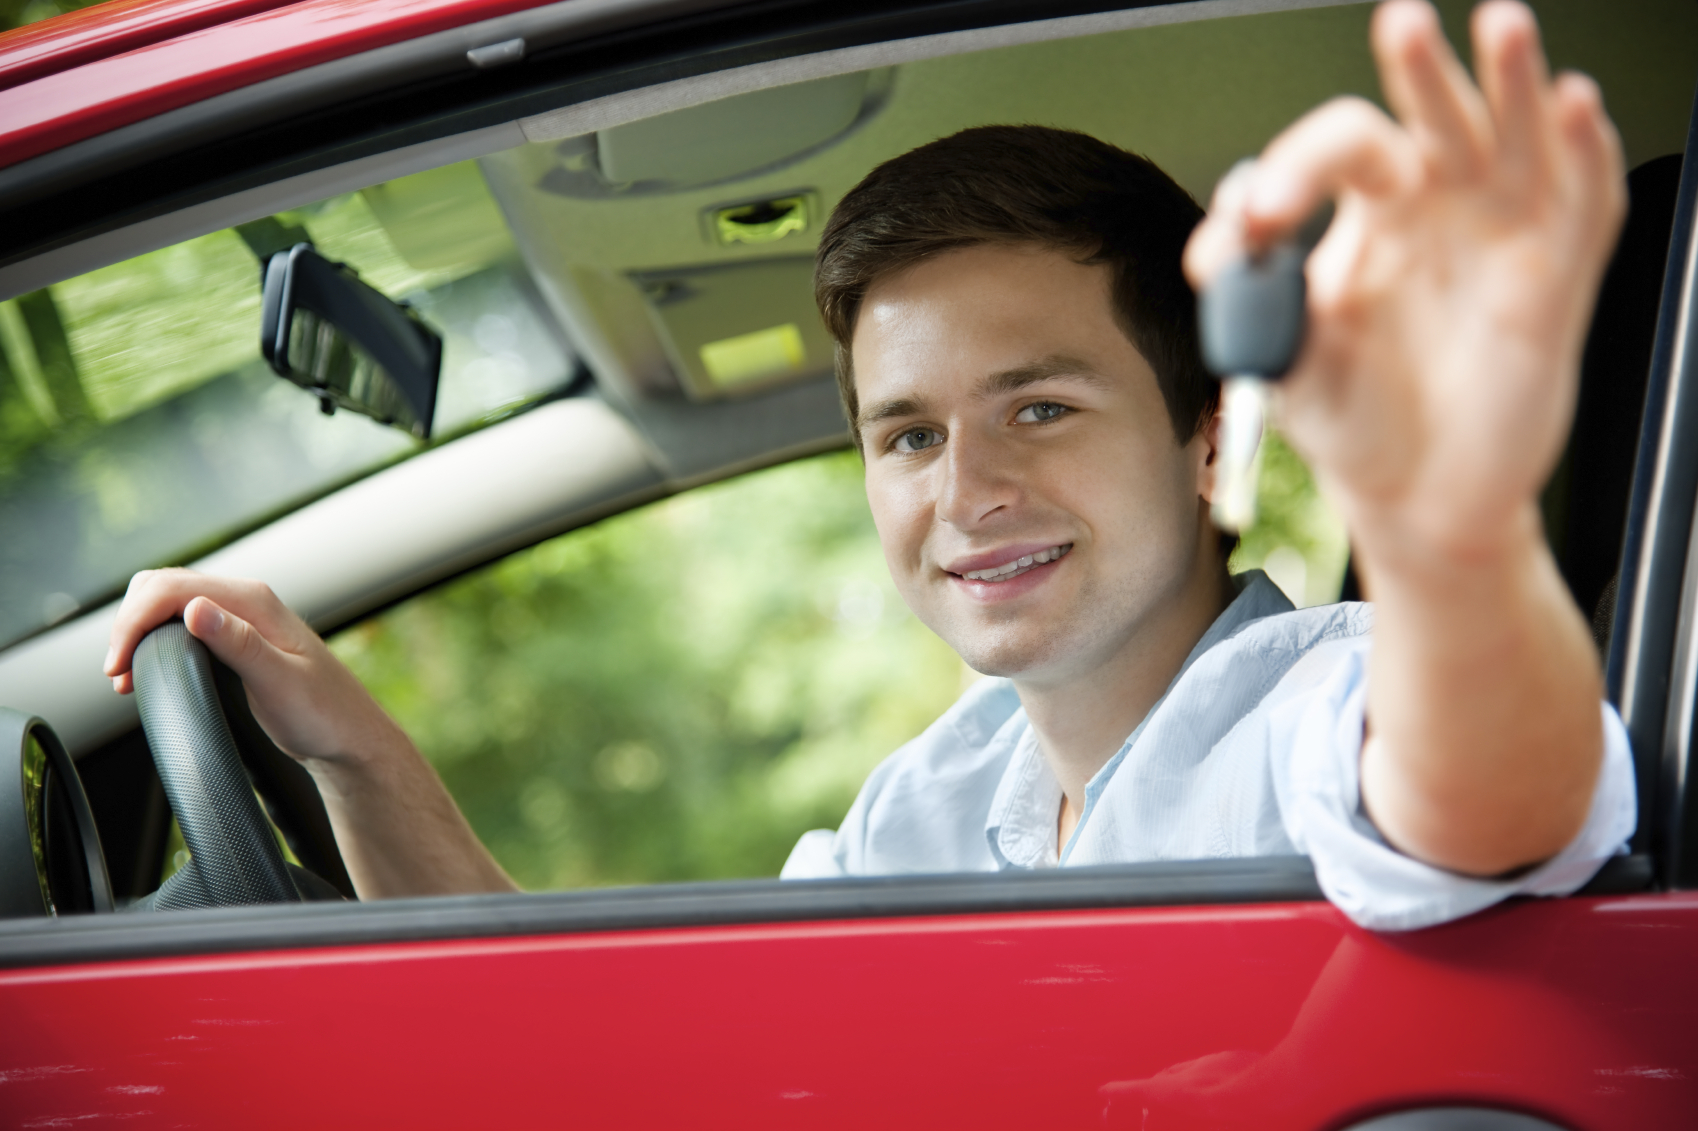 Easily Pass Tips Test Tell Story - Will Upcoming Your A You Driving Me Learn Few To